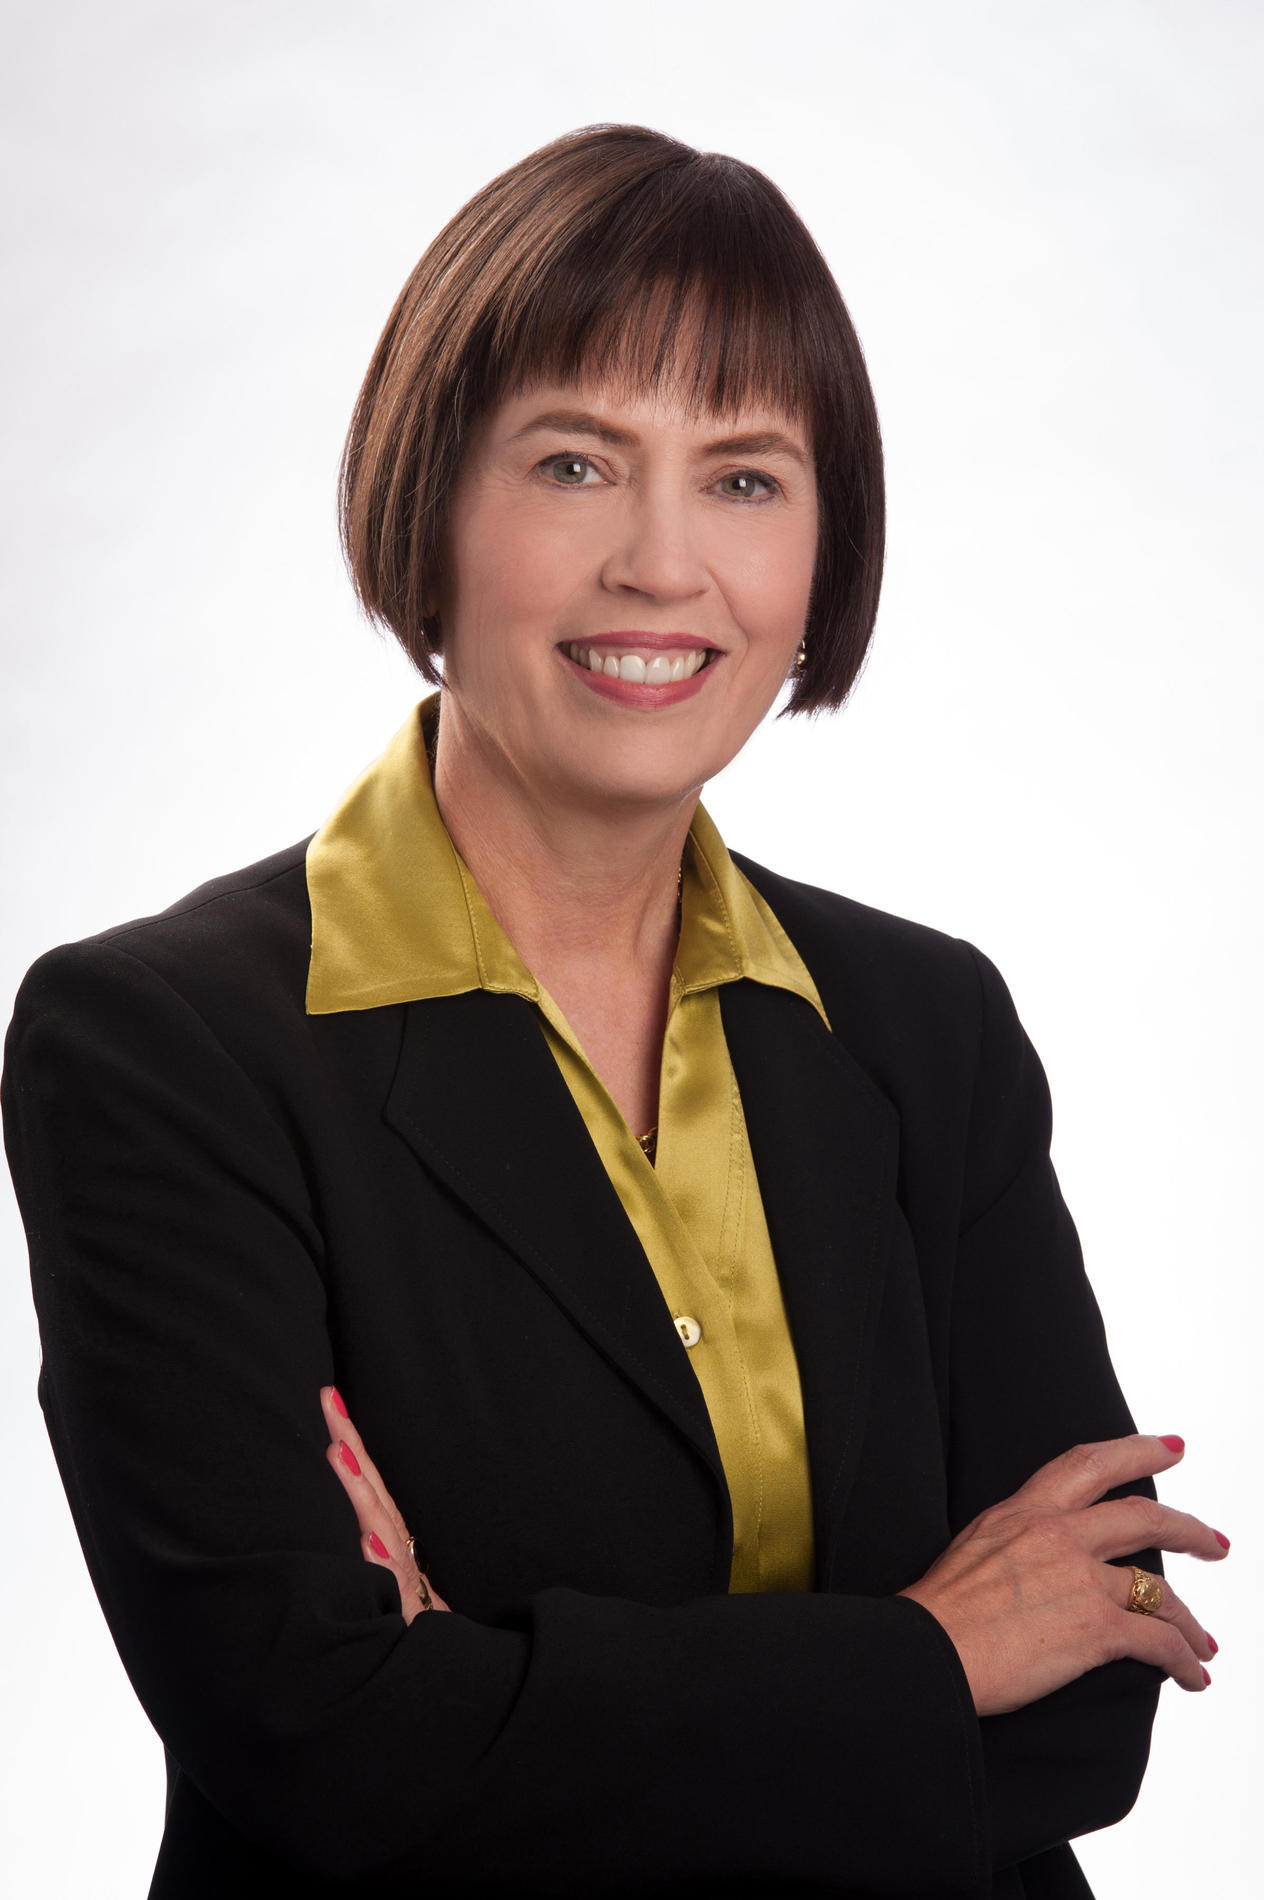 Photo of Kathleen Costlow - Morgan Stanley